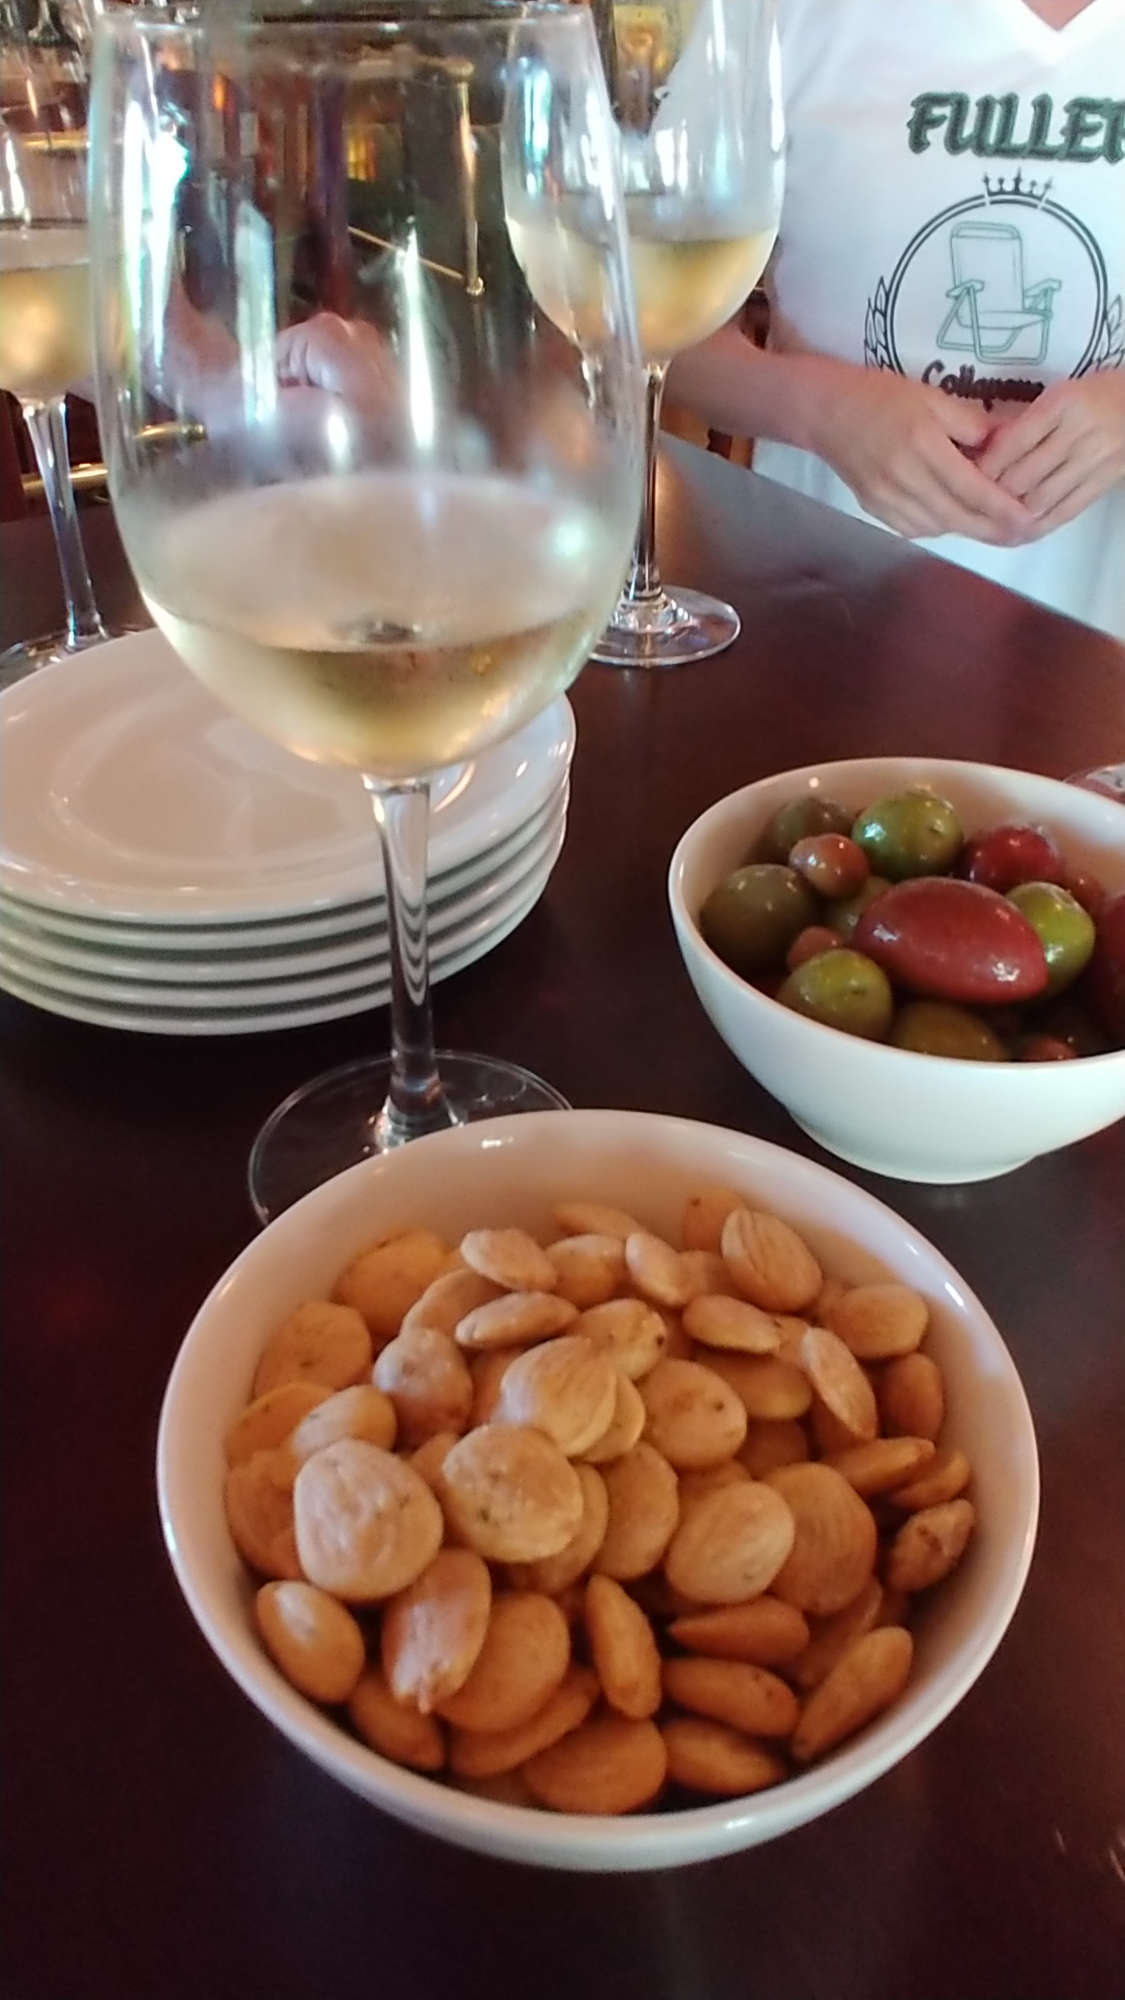 Almonds, olives and The Orcas Project Pinot Gris.